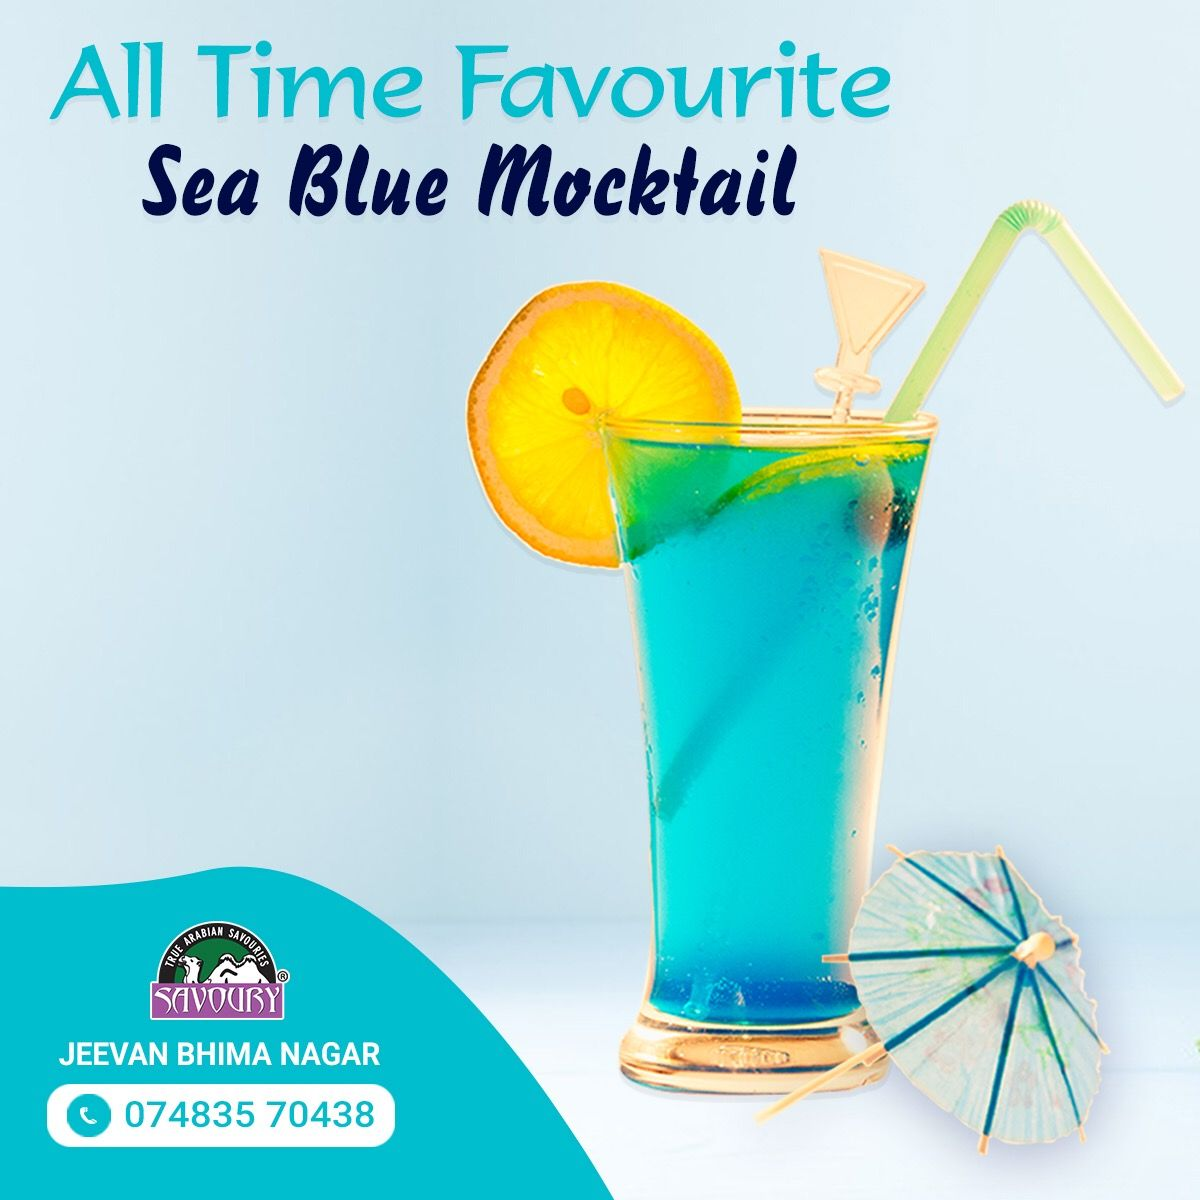 ‬ ‬ All time favourite sea blue mocktail from Savoury Jeevan Bhima Nagar Restaurant. Visit us today and enjoy!